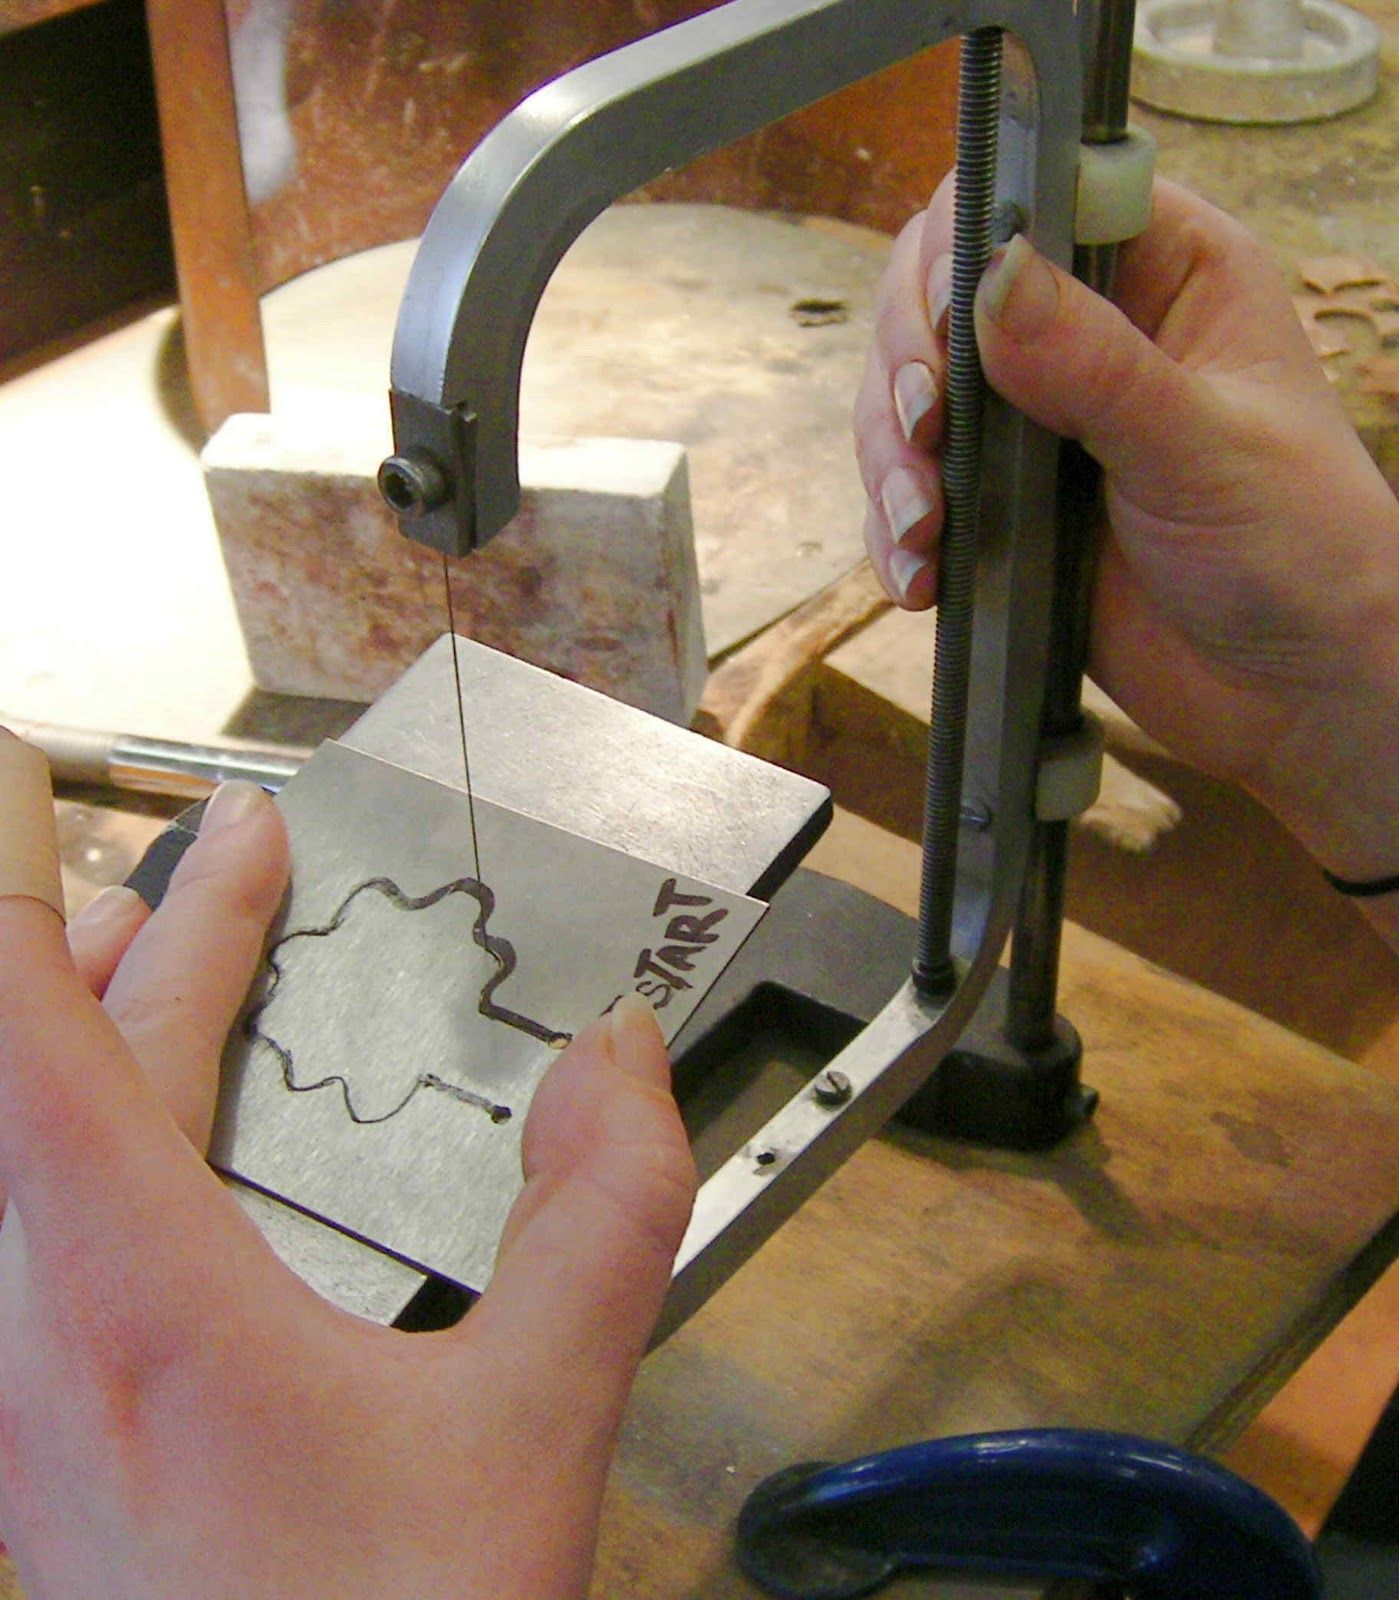 Making A Tool Stamp For Stamping Out Flat Metal Shapes